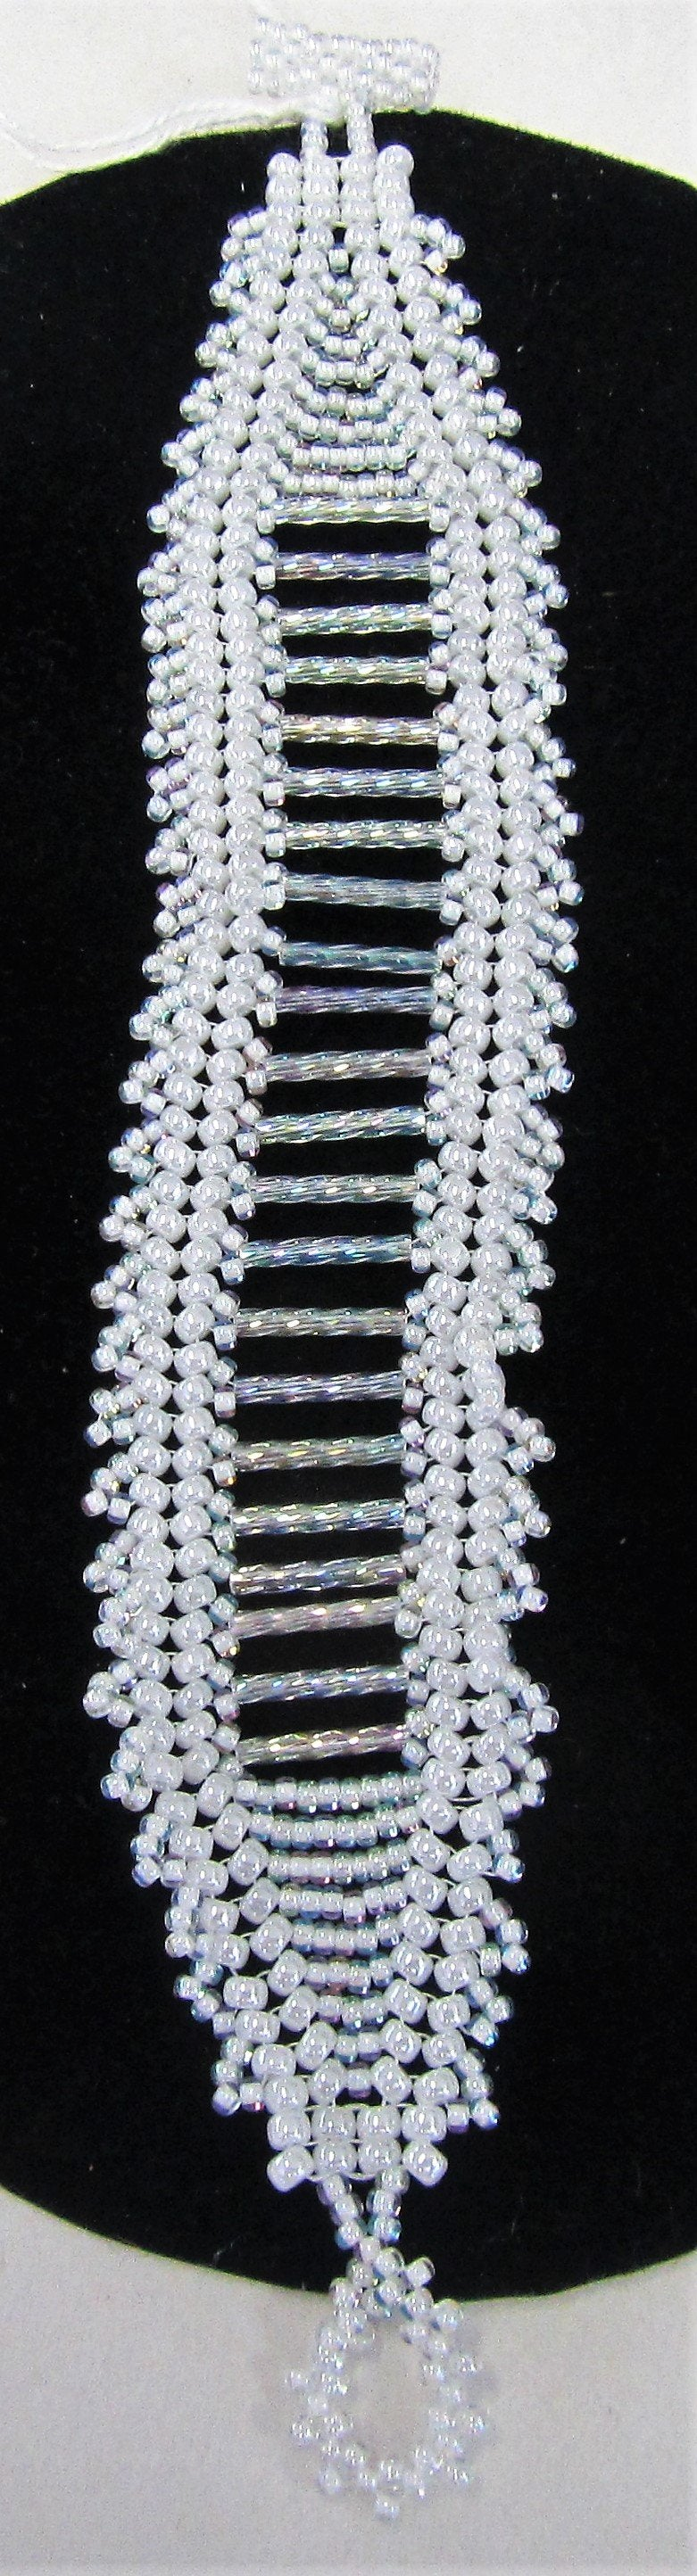 Beautiful handcrafted bracelet with white beads, fastened with a toggle clasp